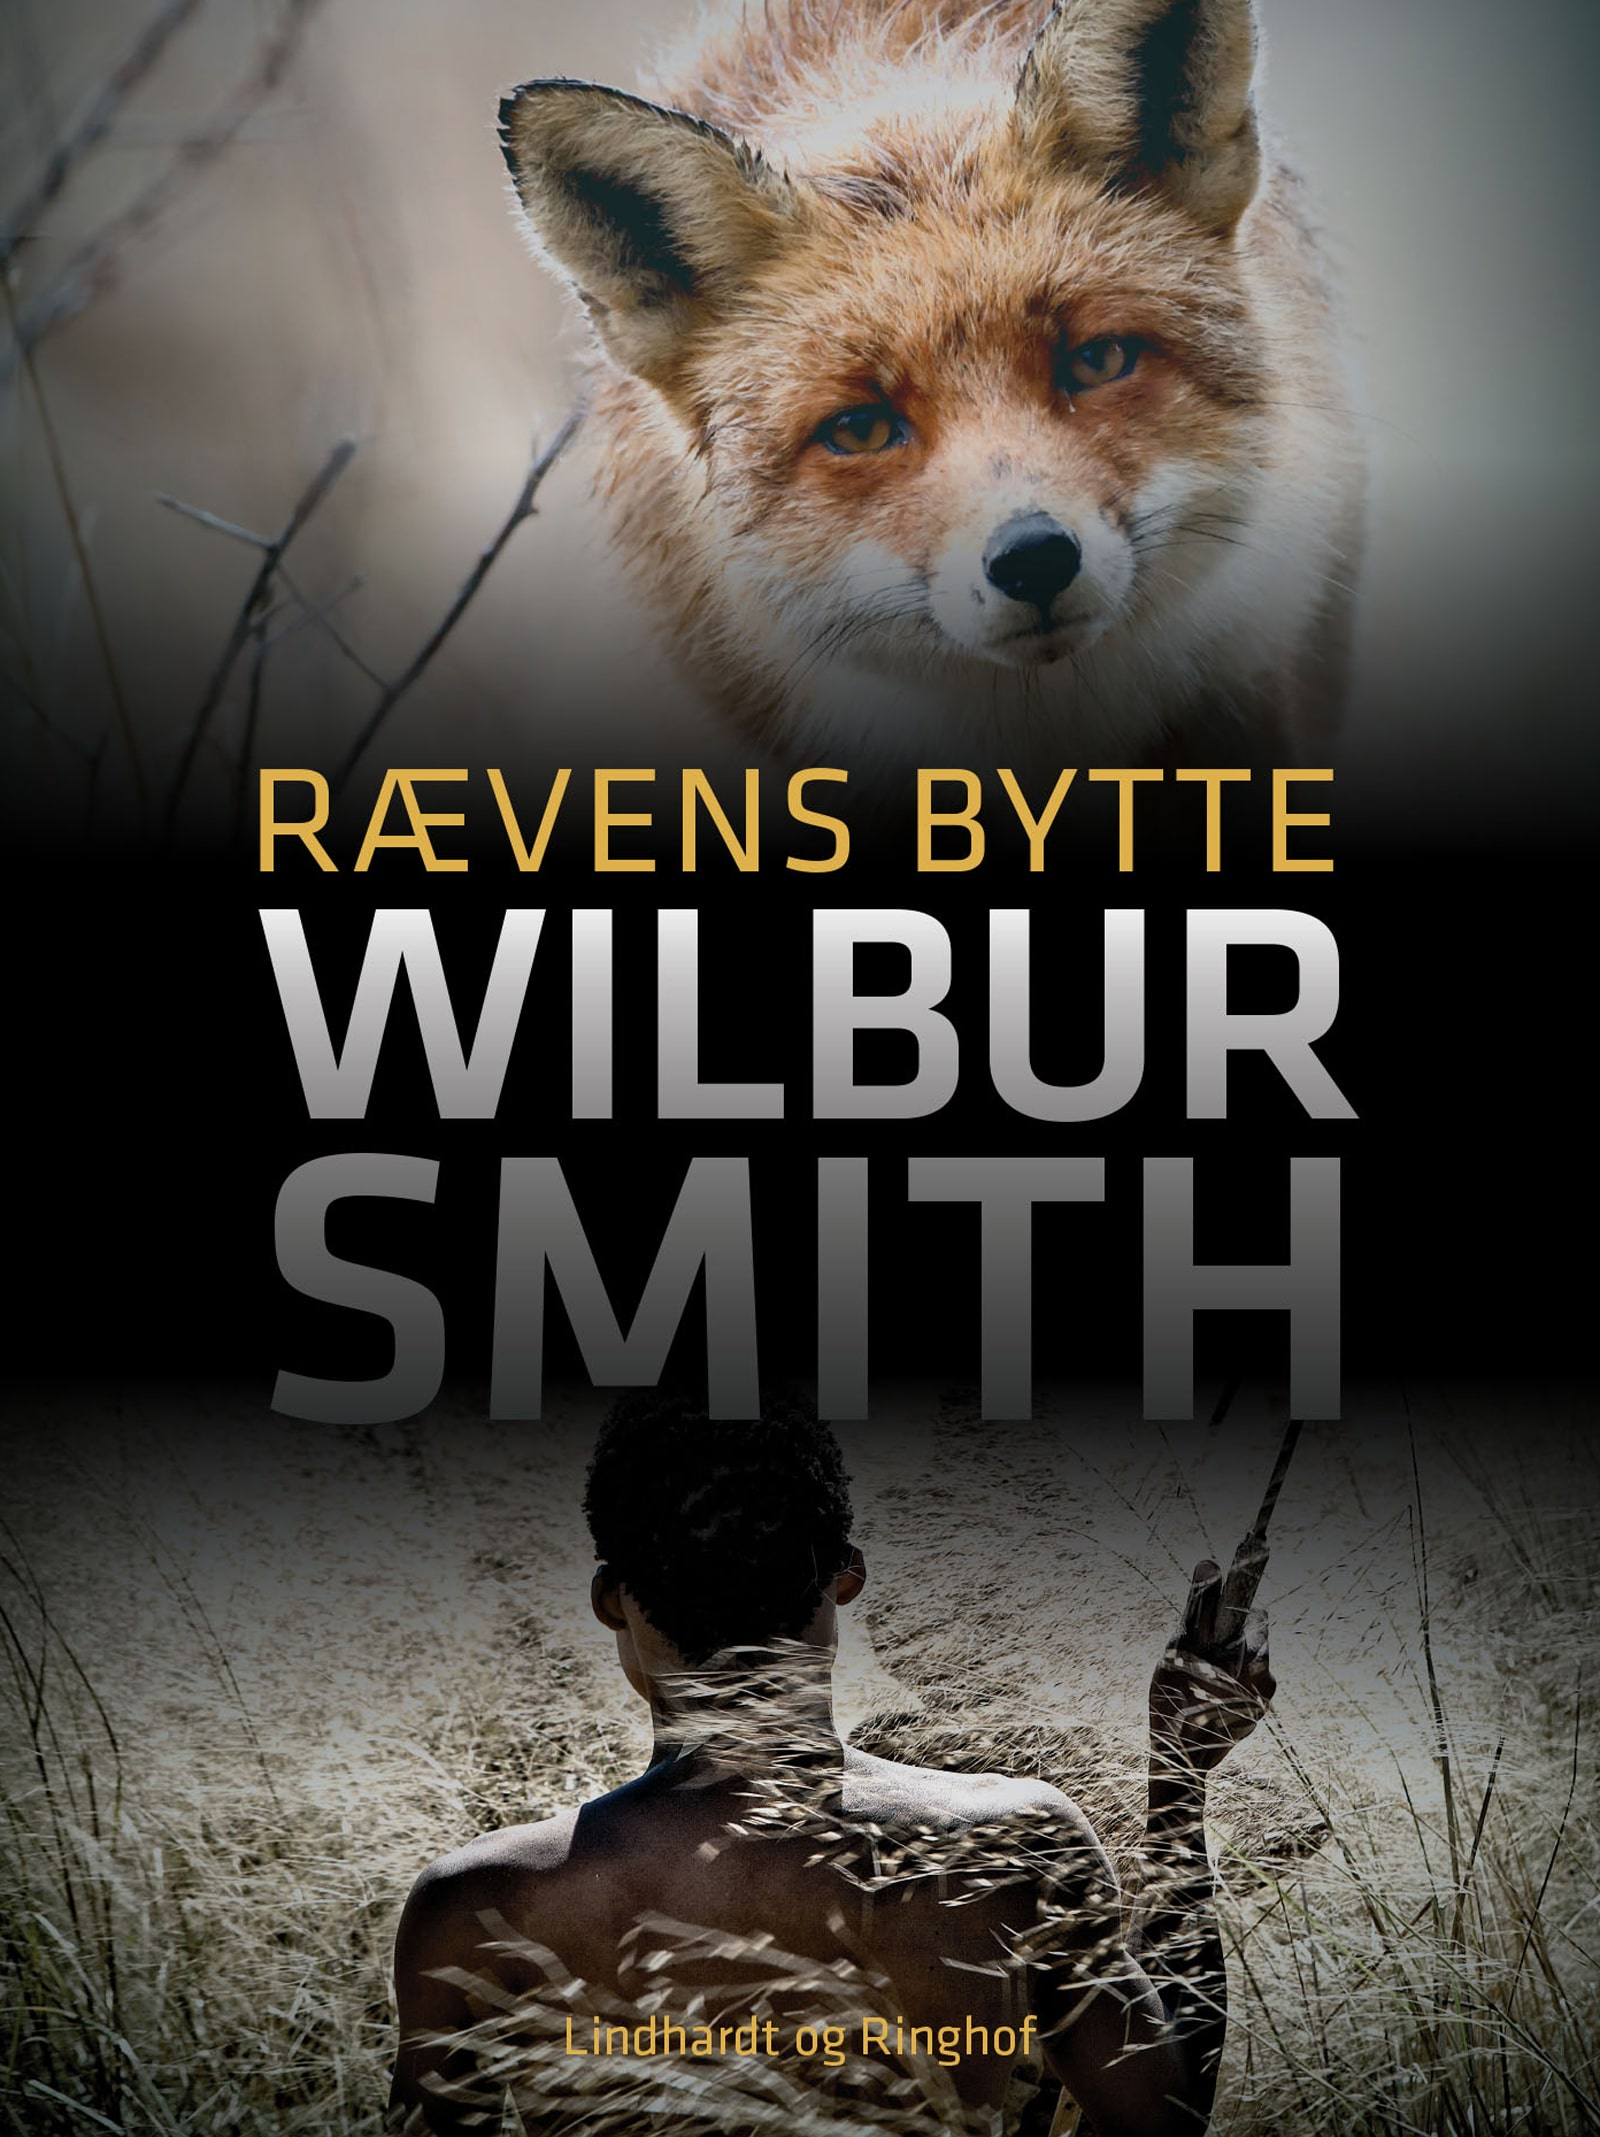 Rævens bytte, Wilbur Smith, Courtney-serien